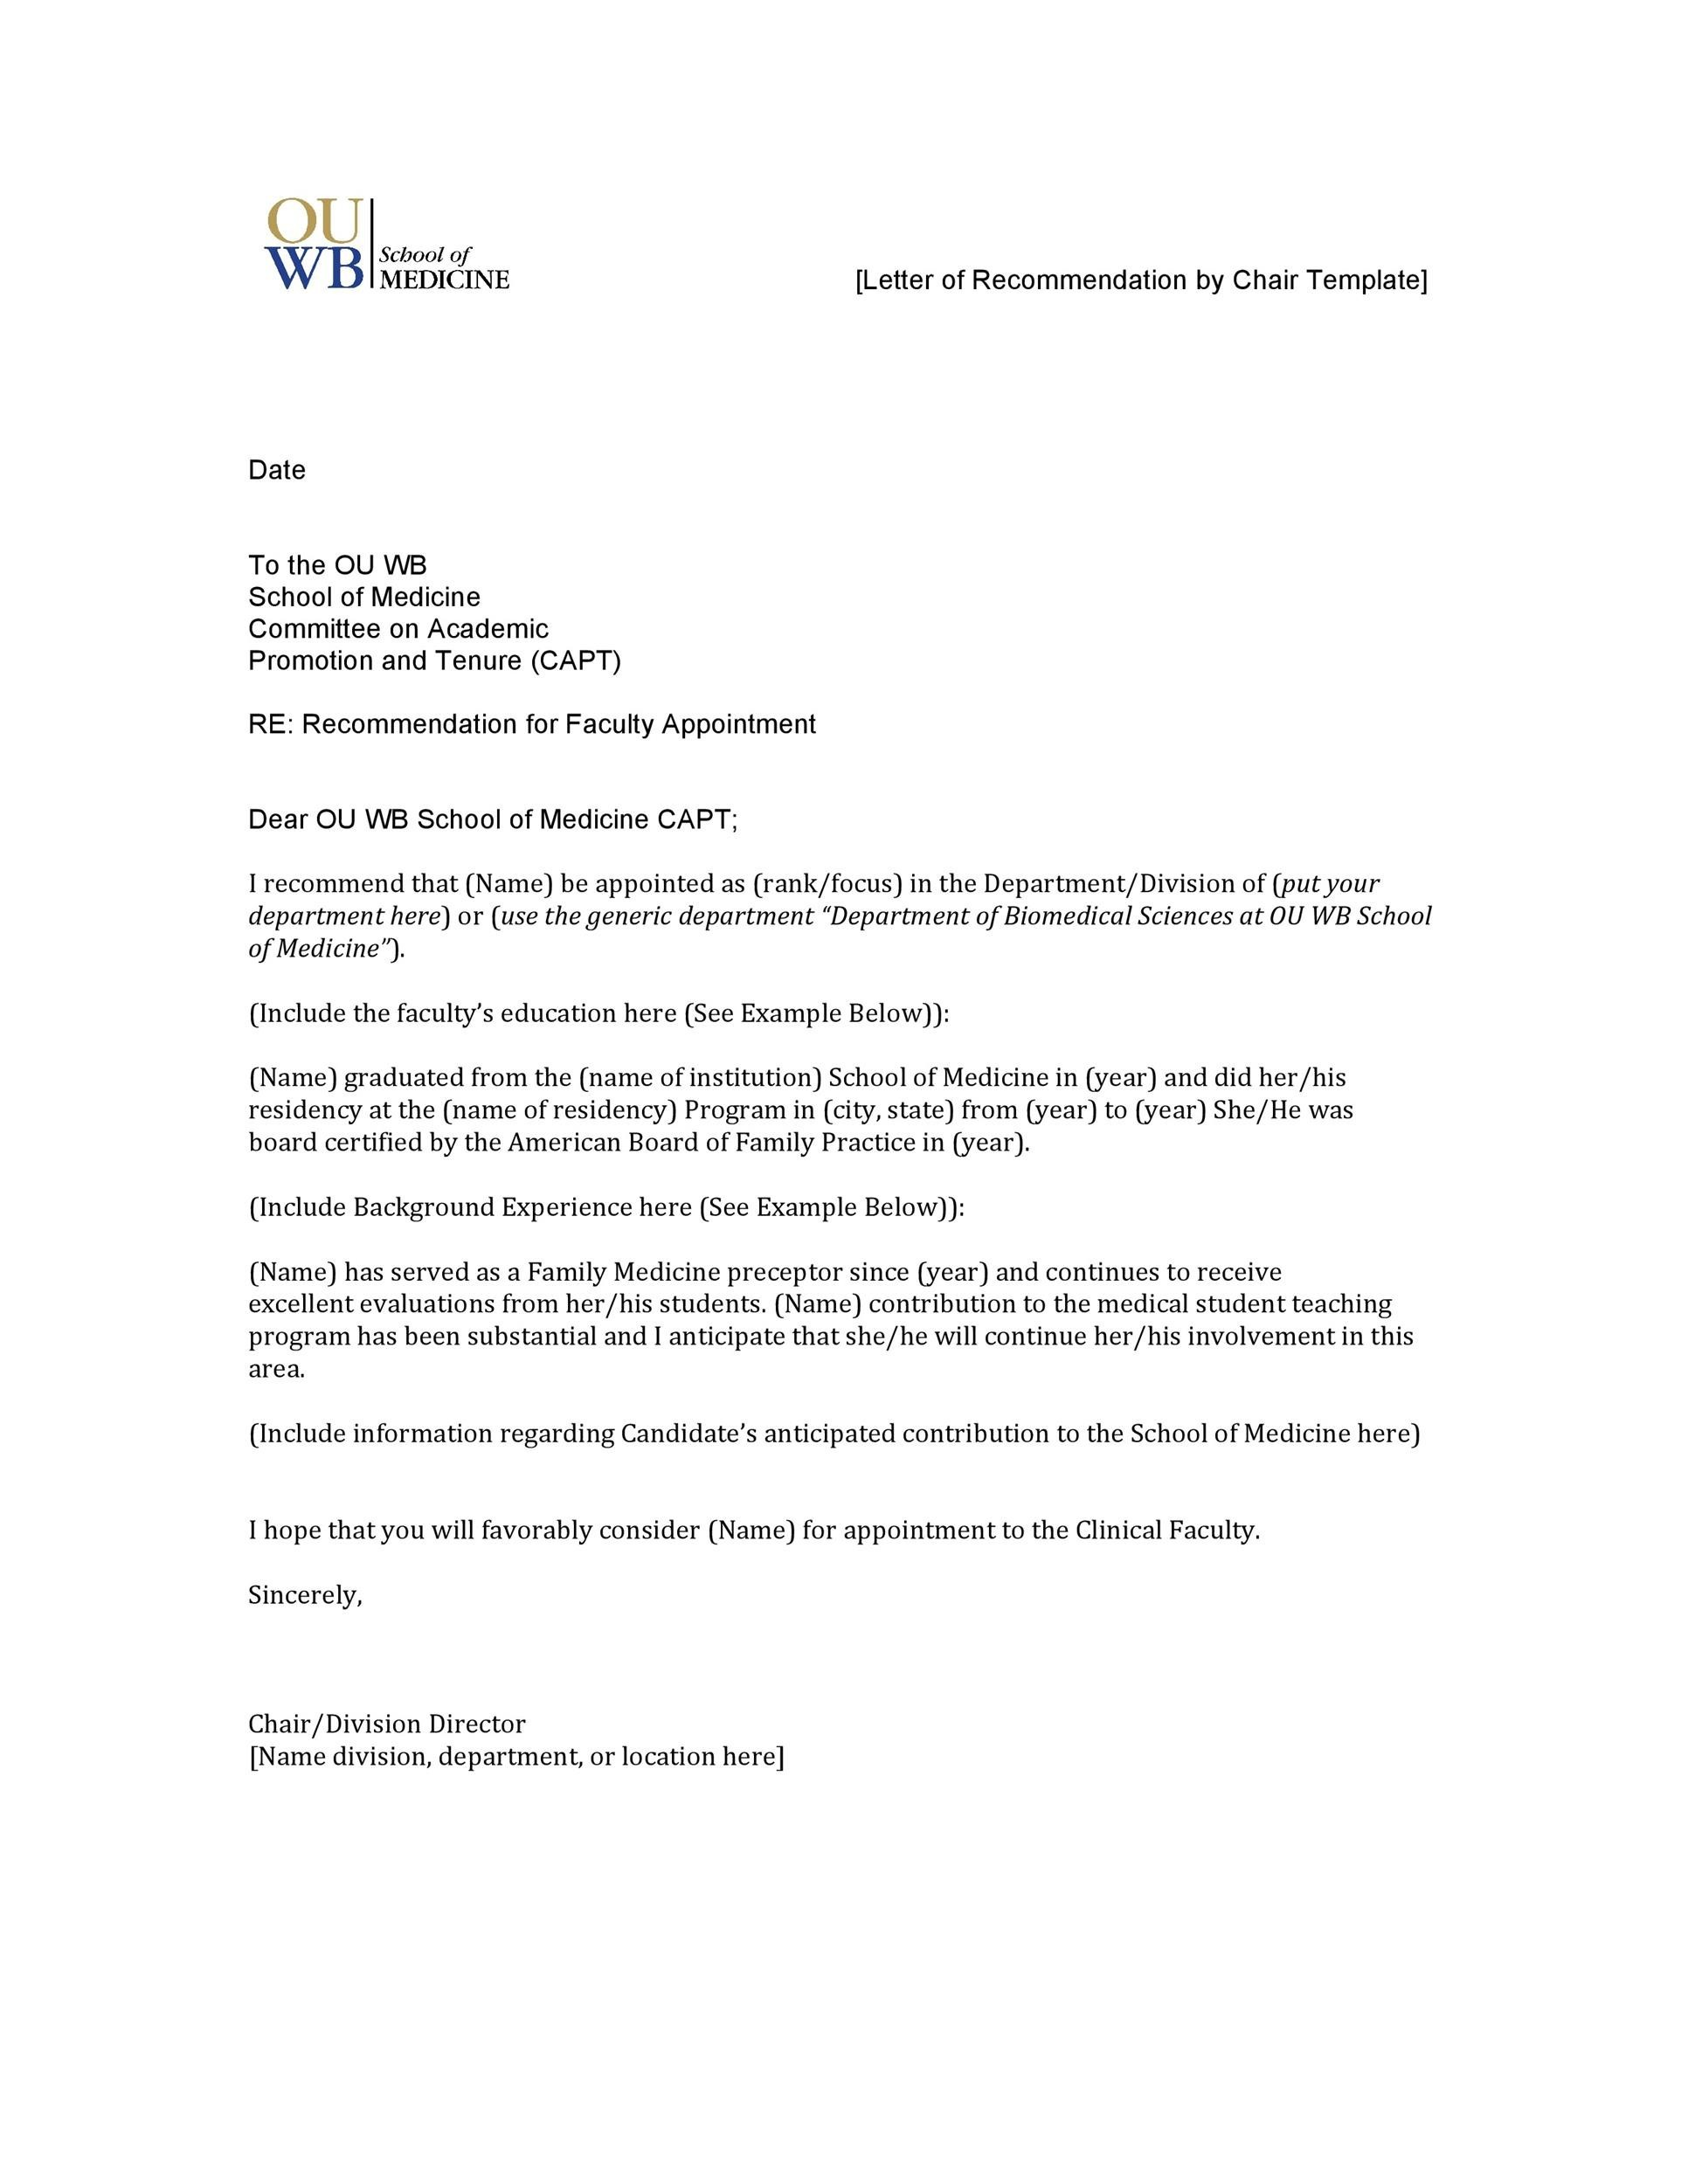 Letter of reccommendation template juvecenitdelacabrera letter of reccommendation template spiritdancerdesigns Choice Image